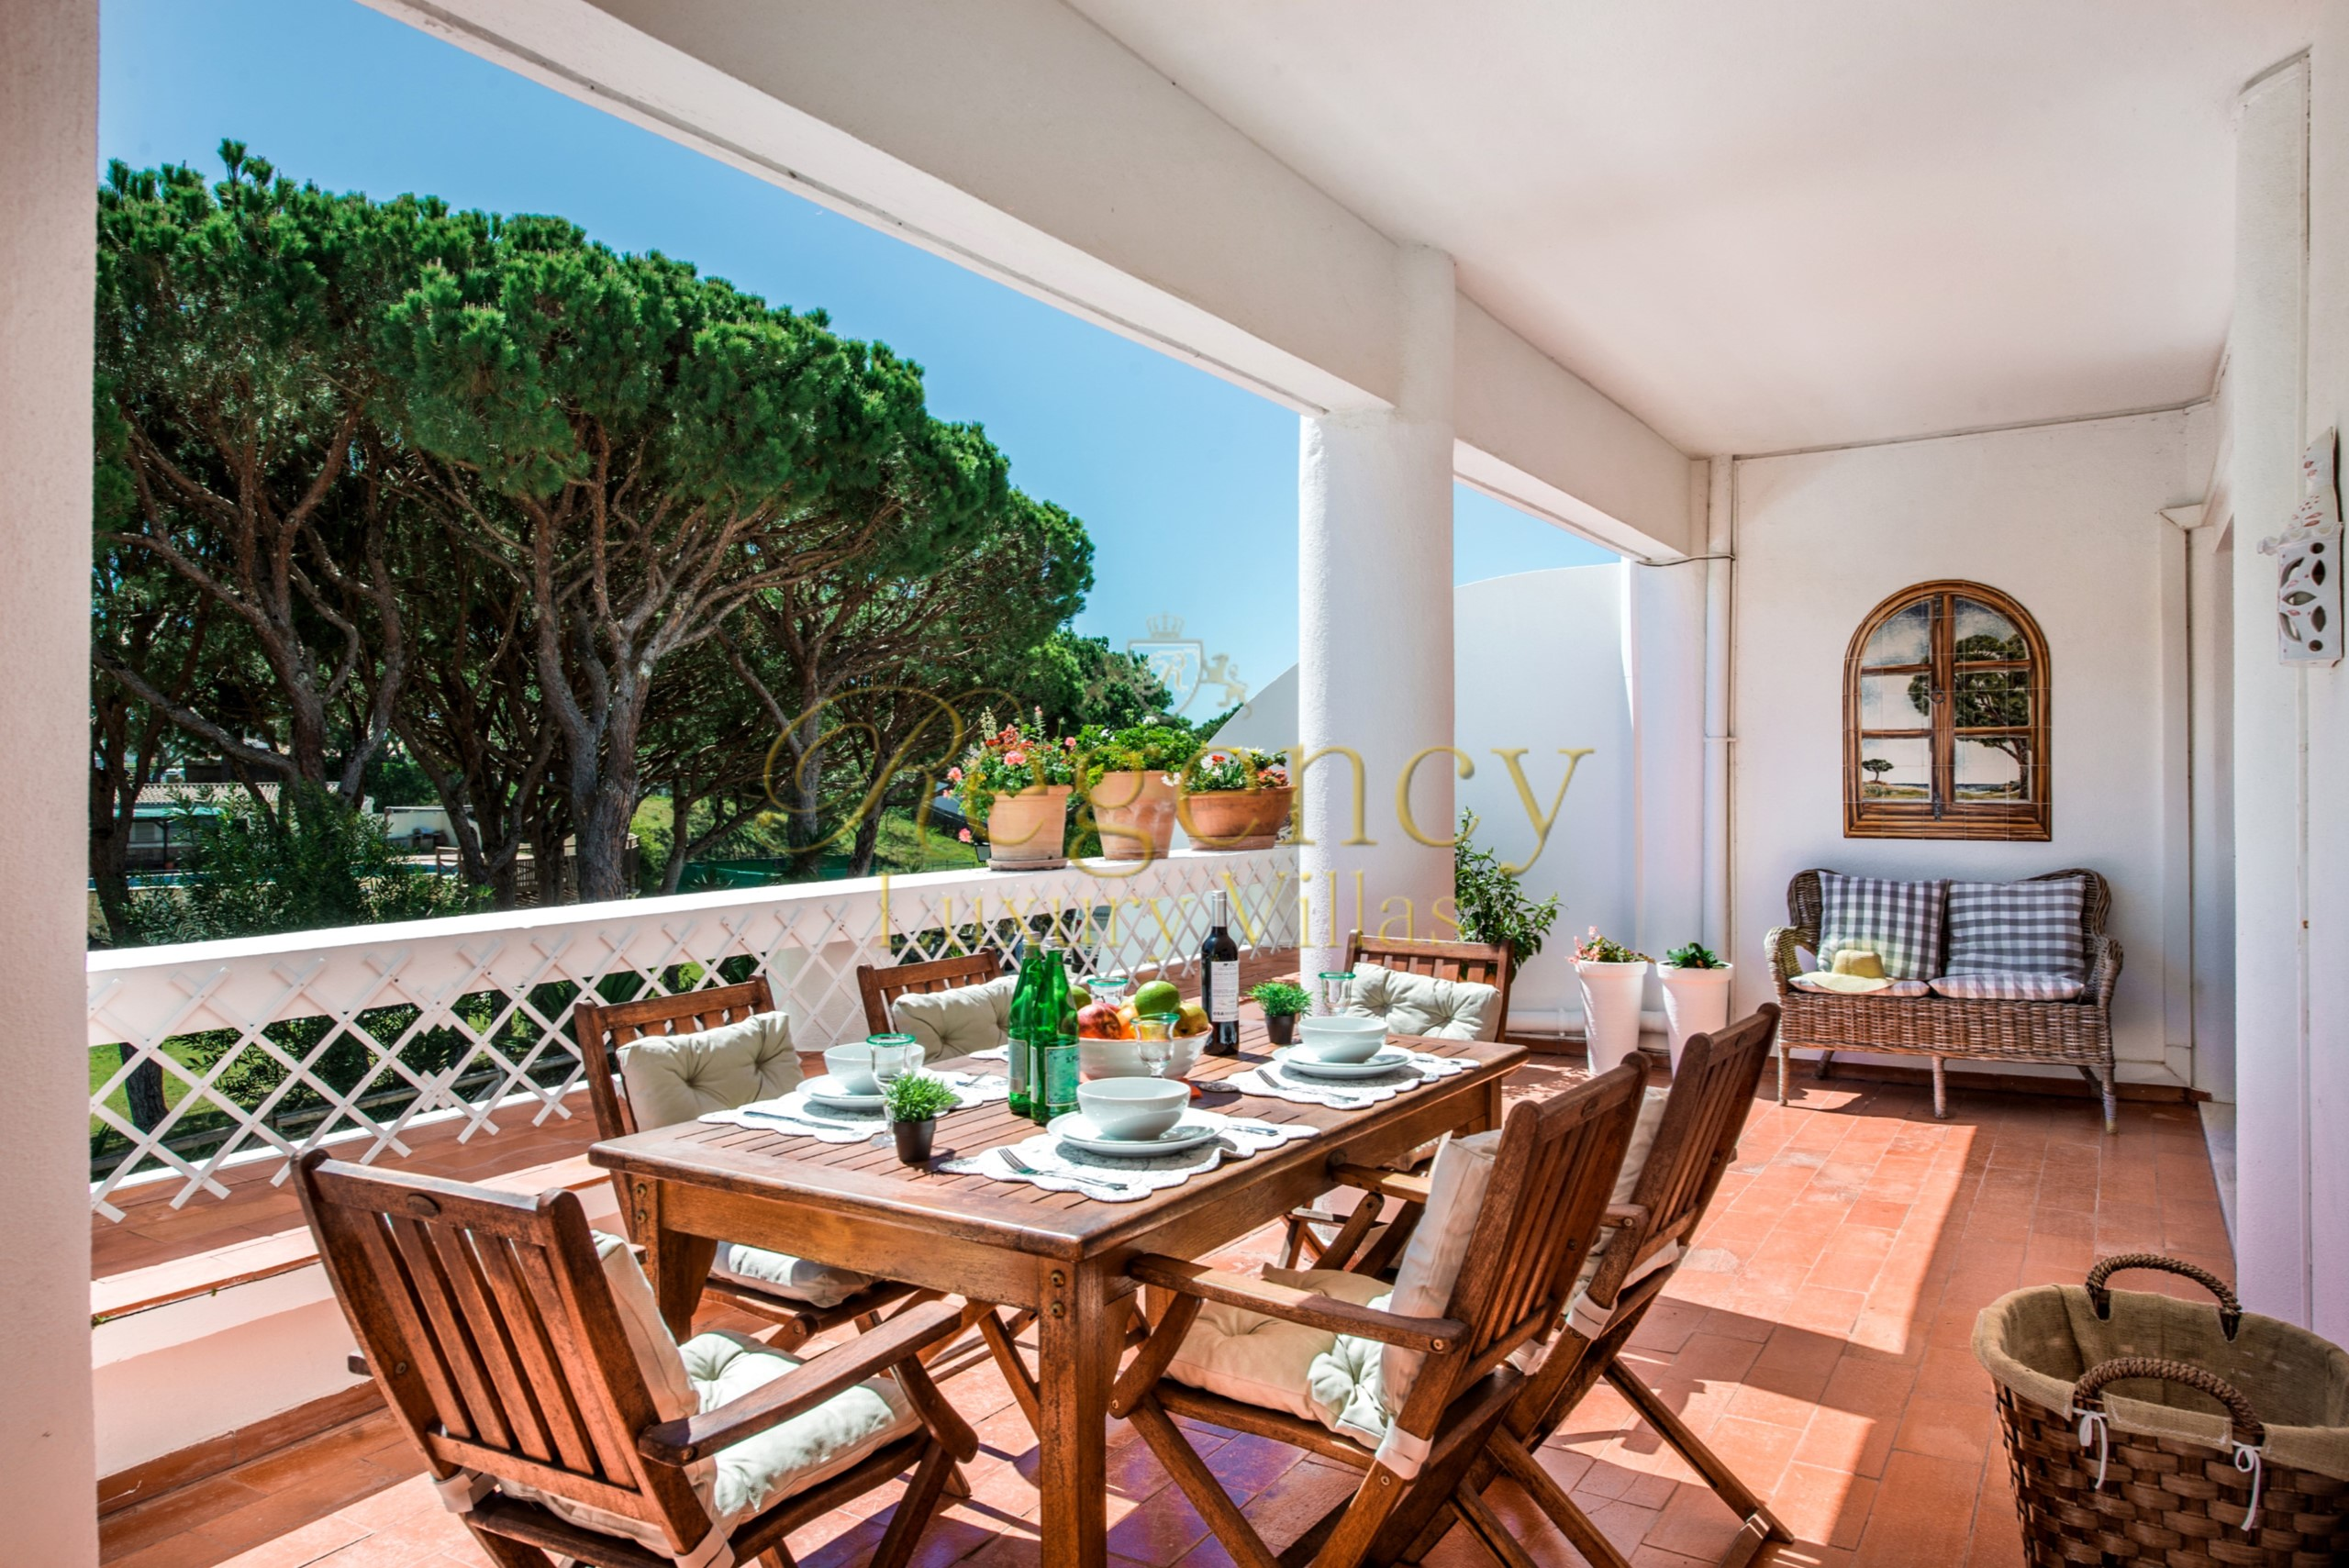 2 Bedroom Villa To Rent In Vale Do Lobo Villa Mali Regency Luxury Villas 16